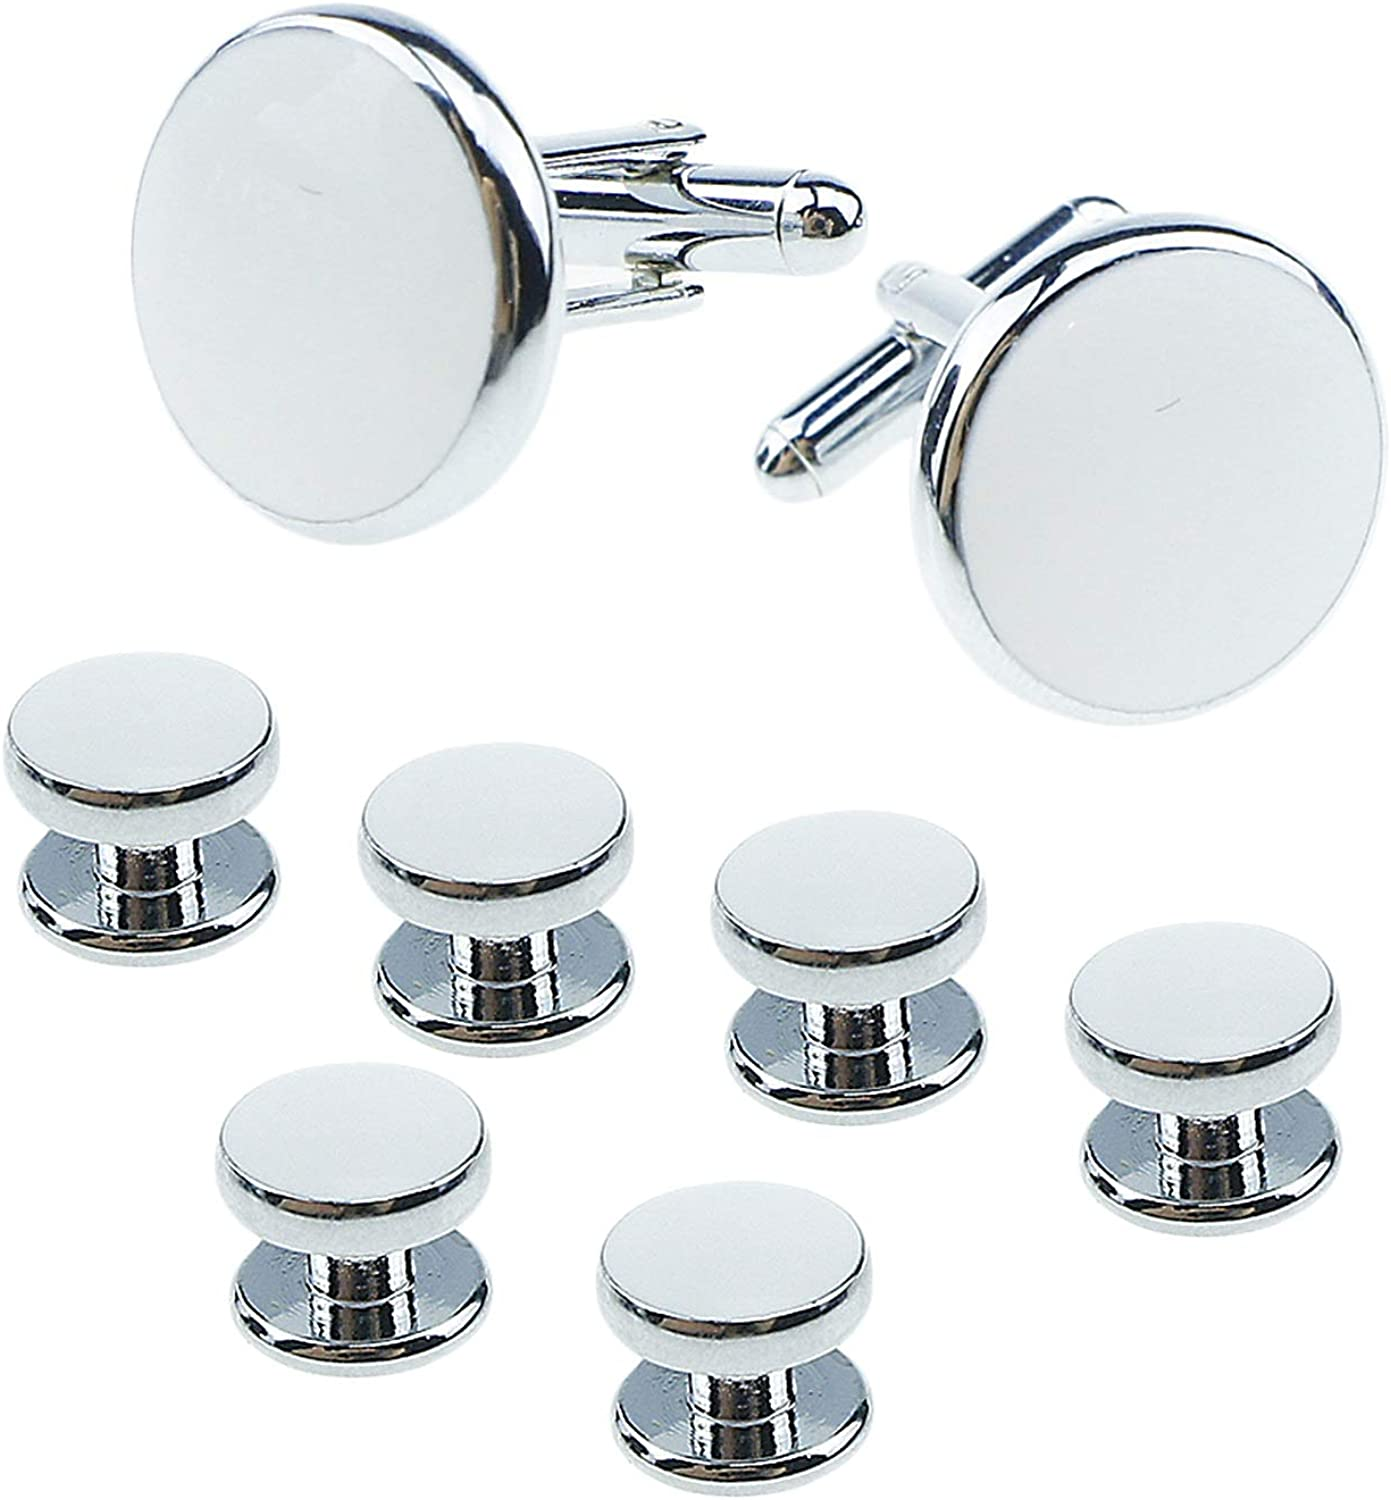 UJOY Cufflinks and Max 57% OFF Studs Set Some reservation Blanks Tuxedo 4 Shirt Colors Round